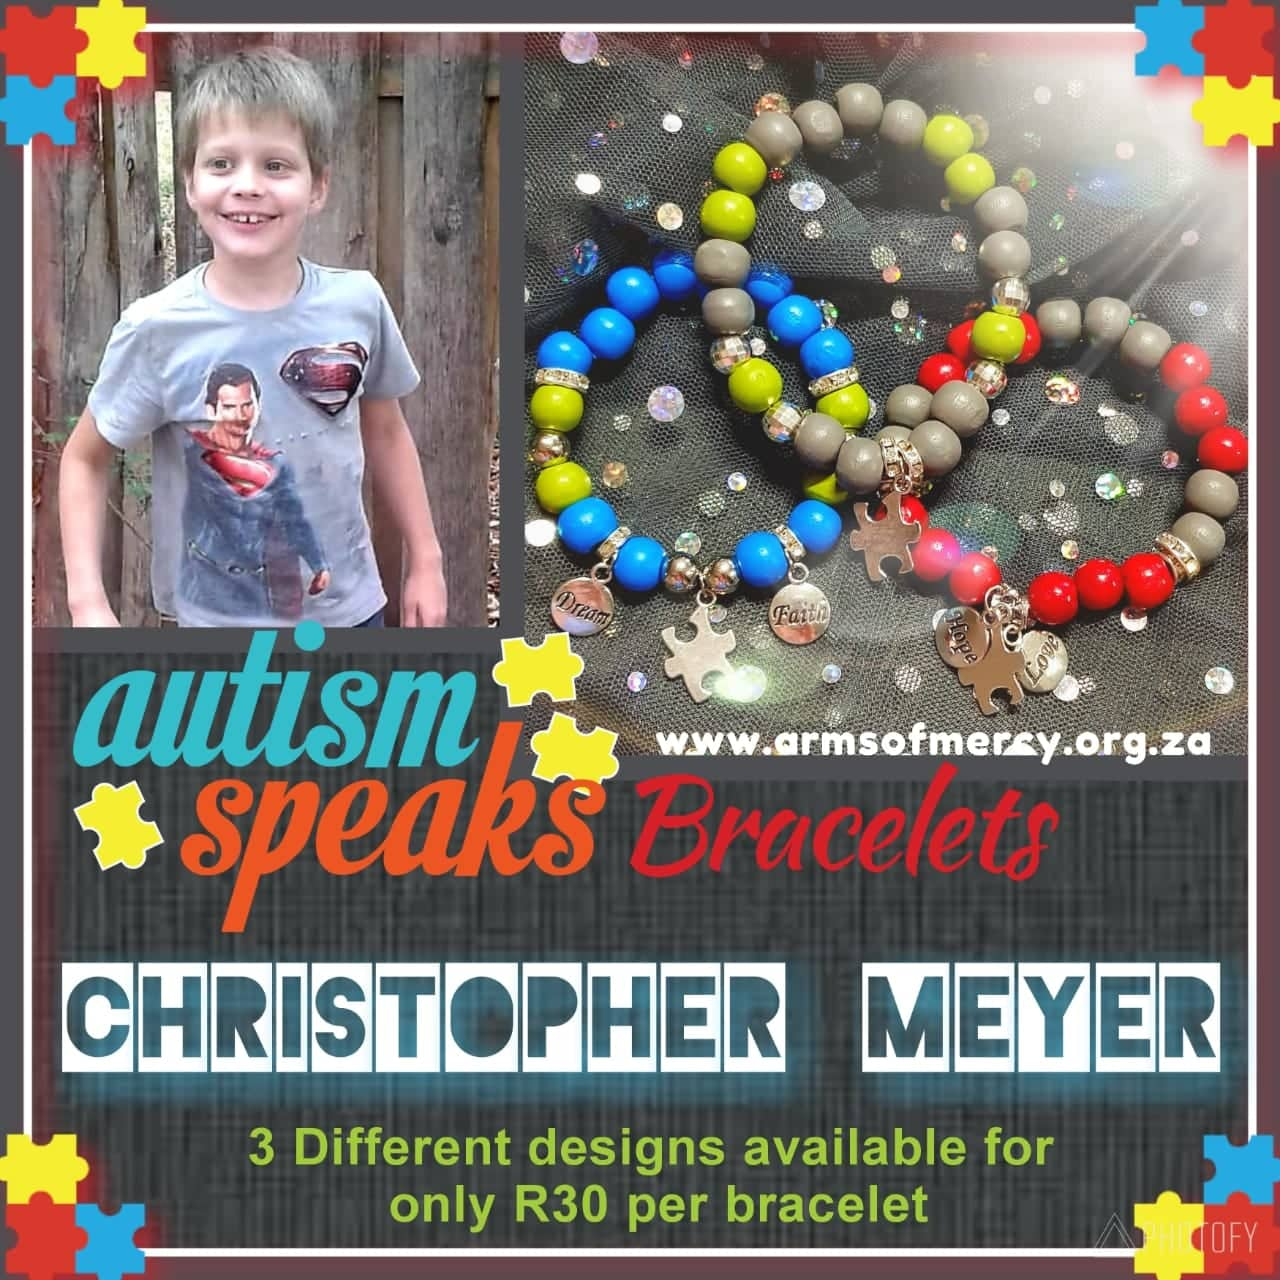 Autism Speaks Bracelets for Christopher Meyer © Arms of Mercy NPC